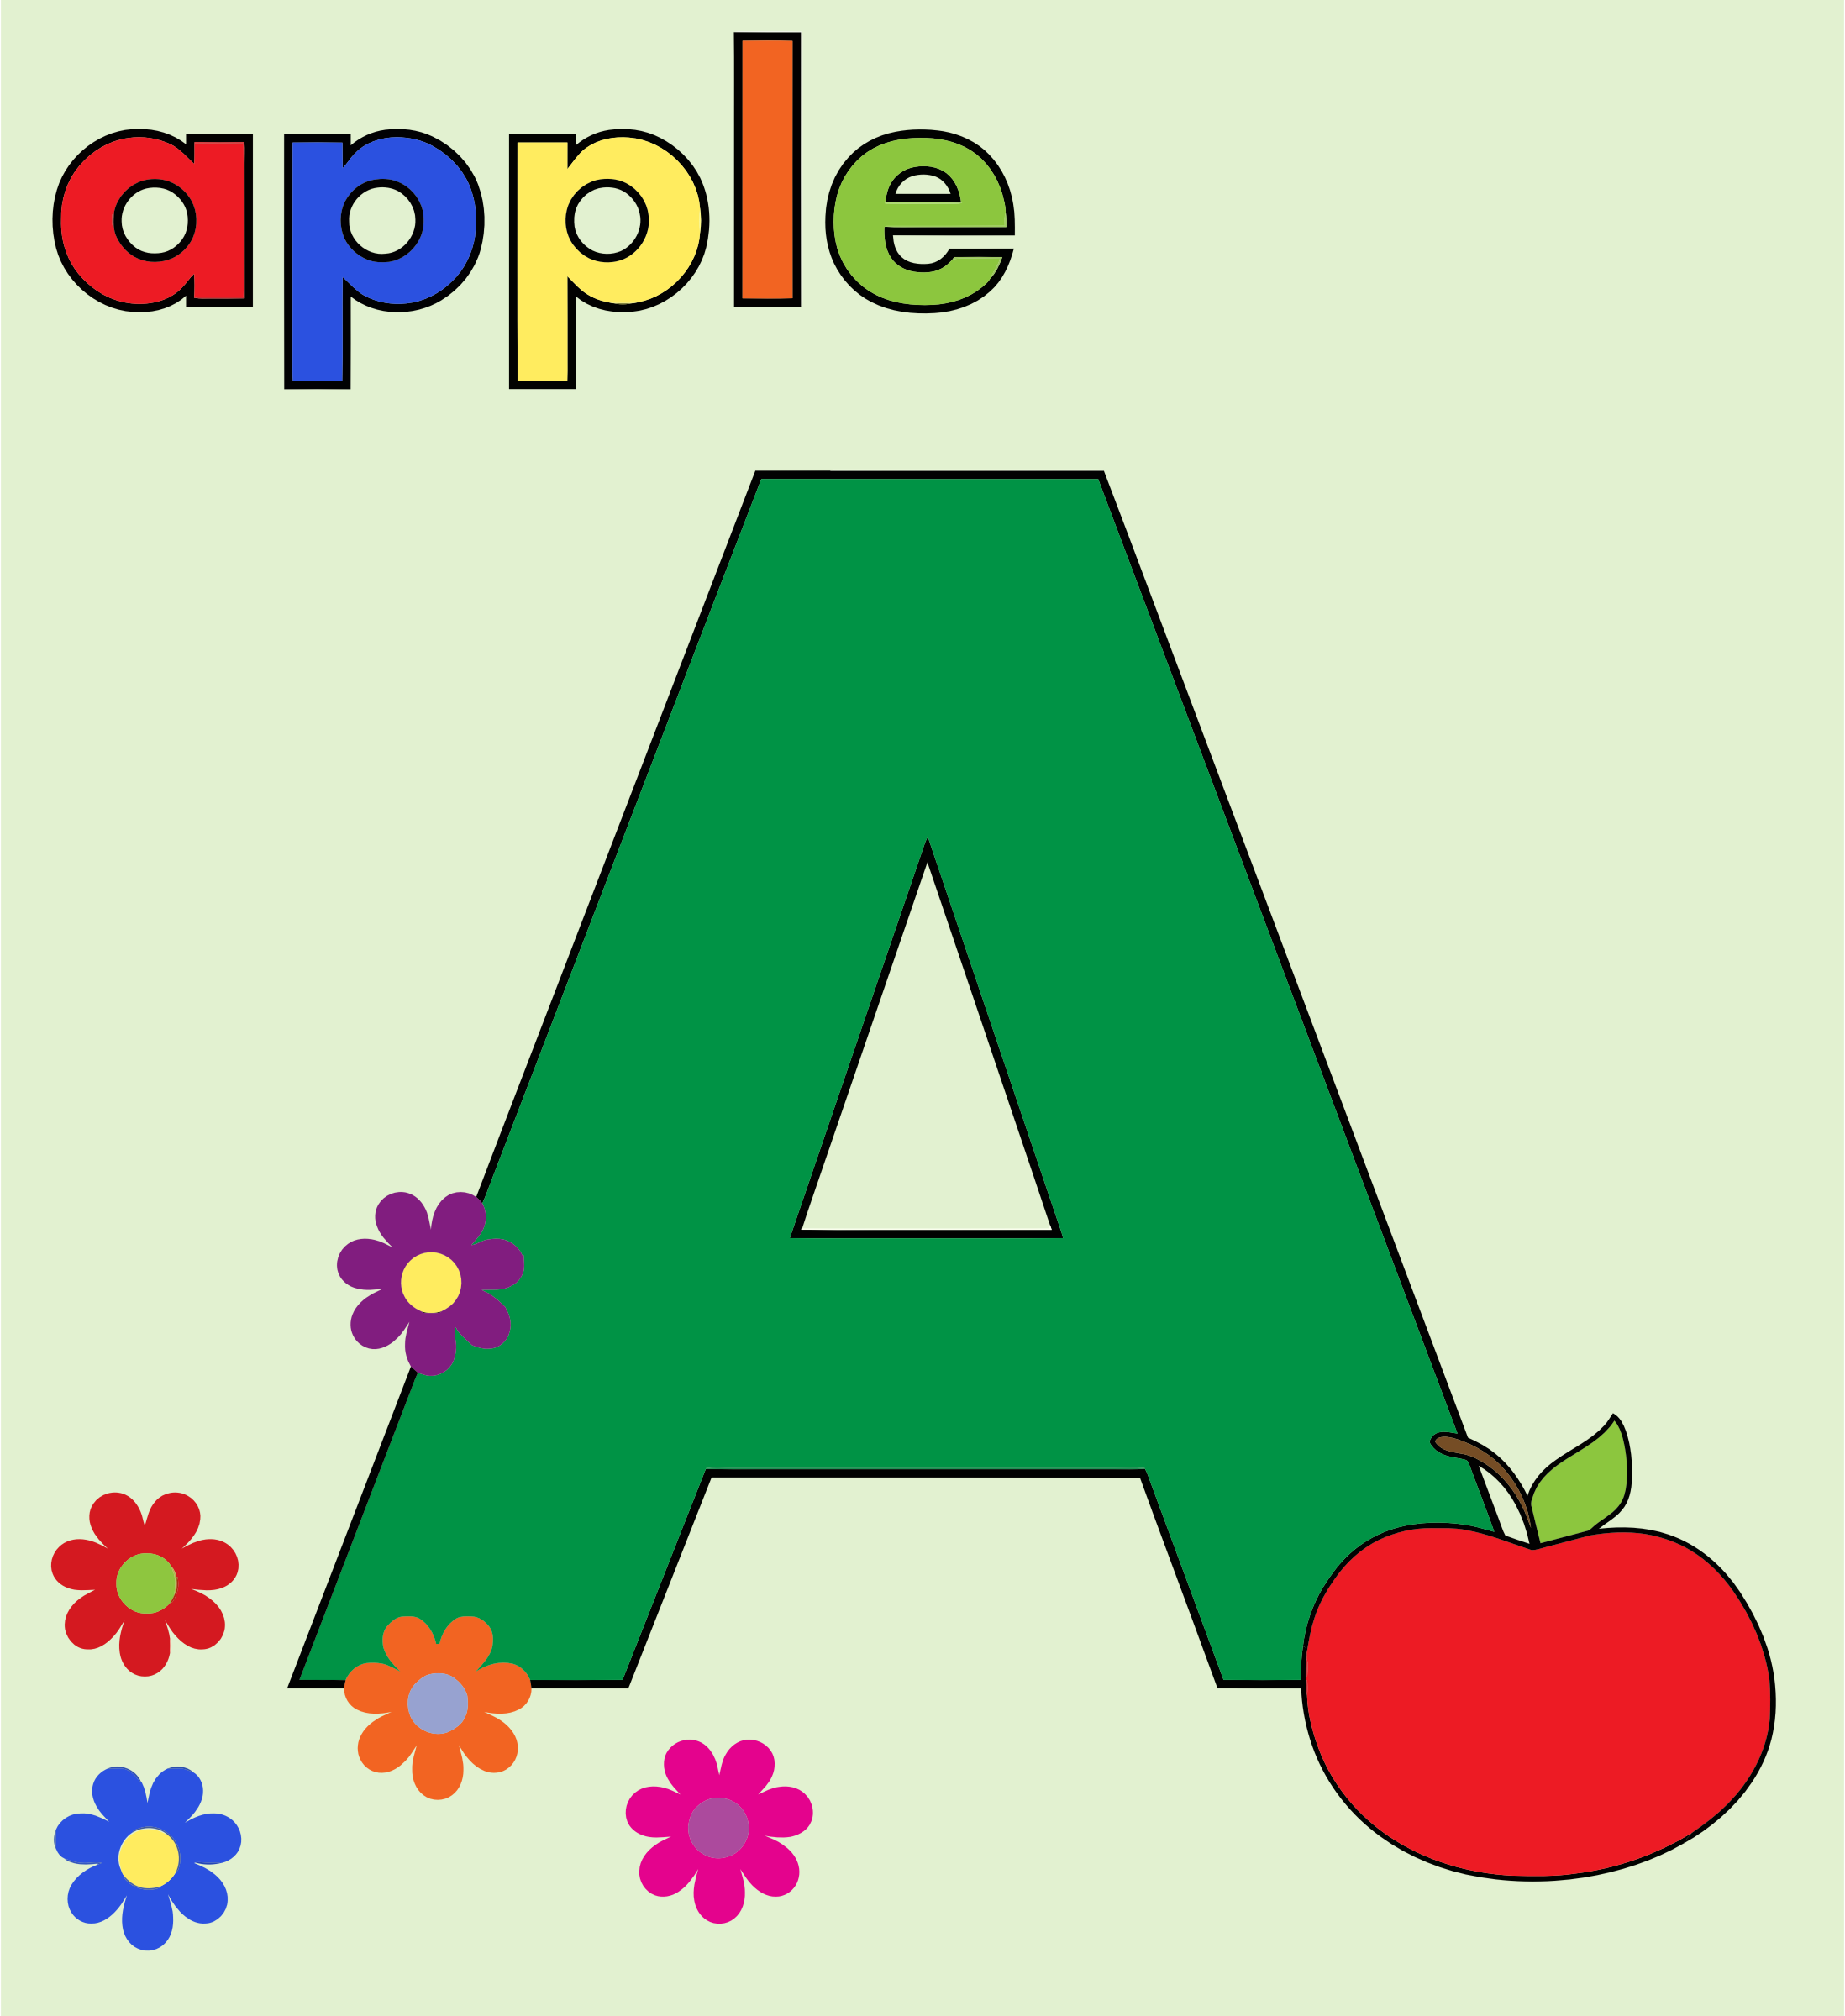 A alphabet letter apple clipart clip freeuse library A alphabet letter apple clipart - ClipartFest clip freeuse library